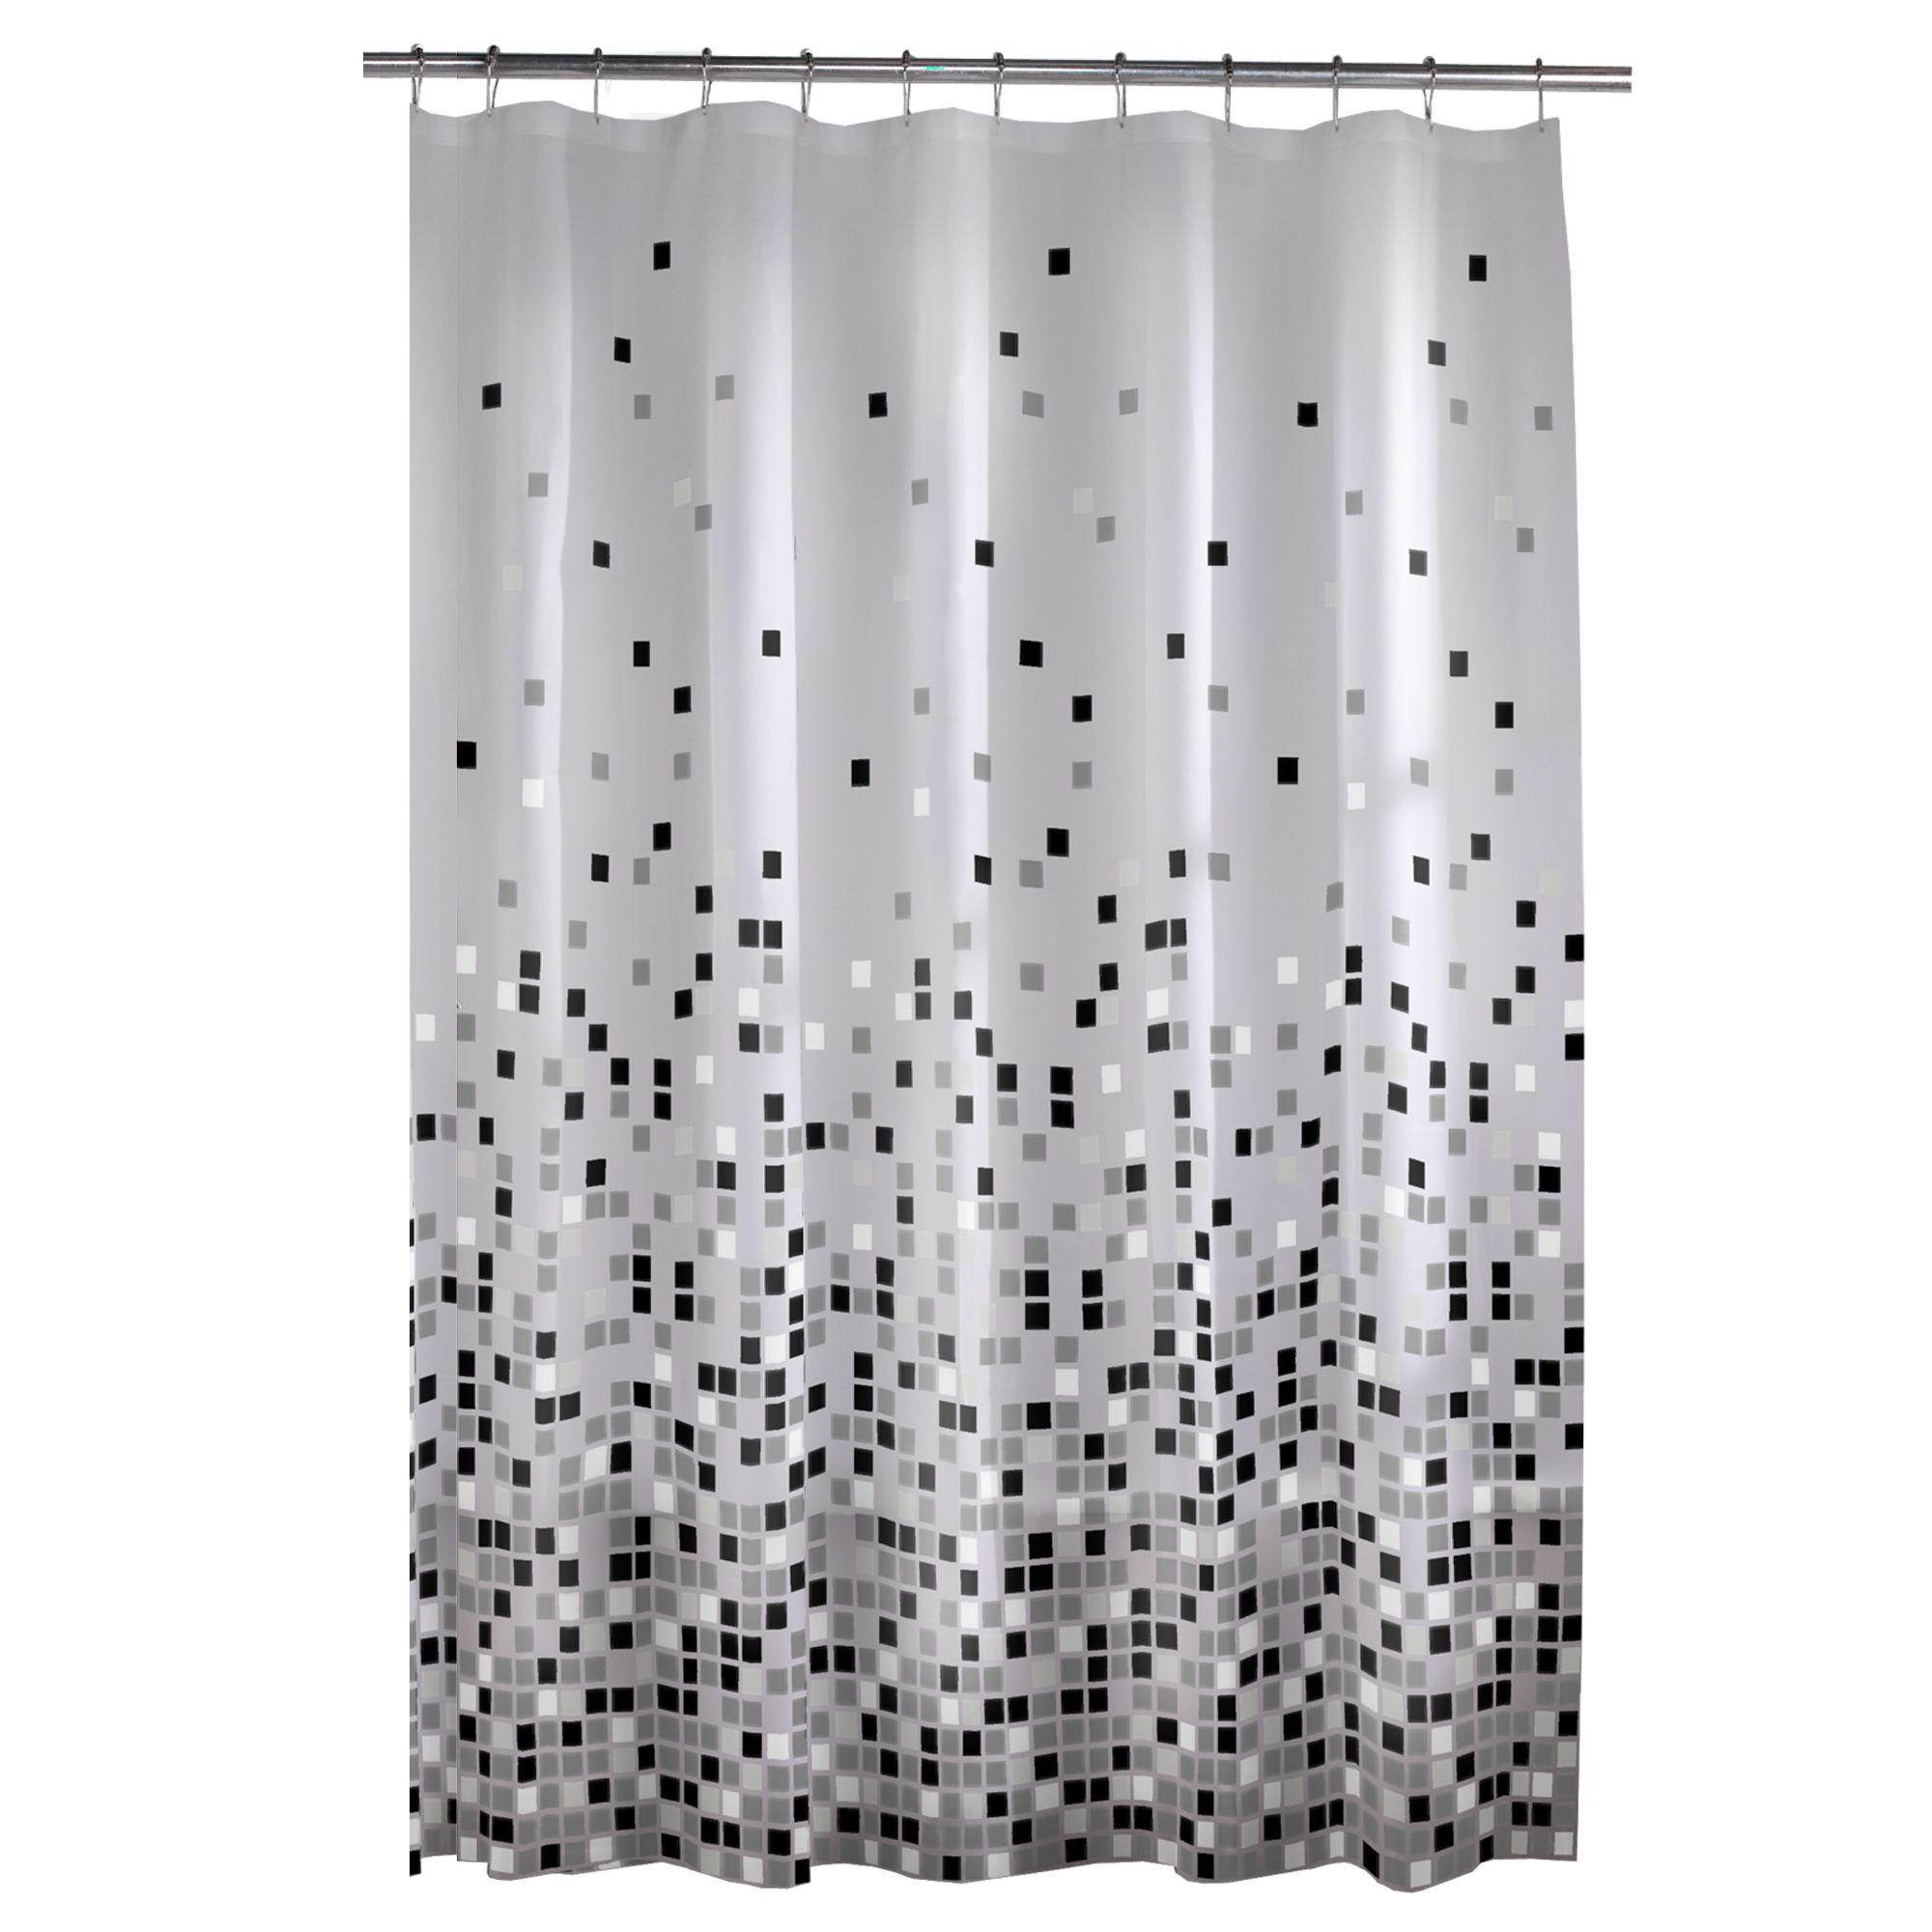 Matrix PEVA shower curtain, Bath Accessories | Walmart Canada ...